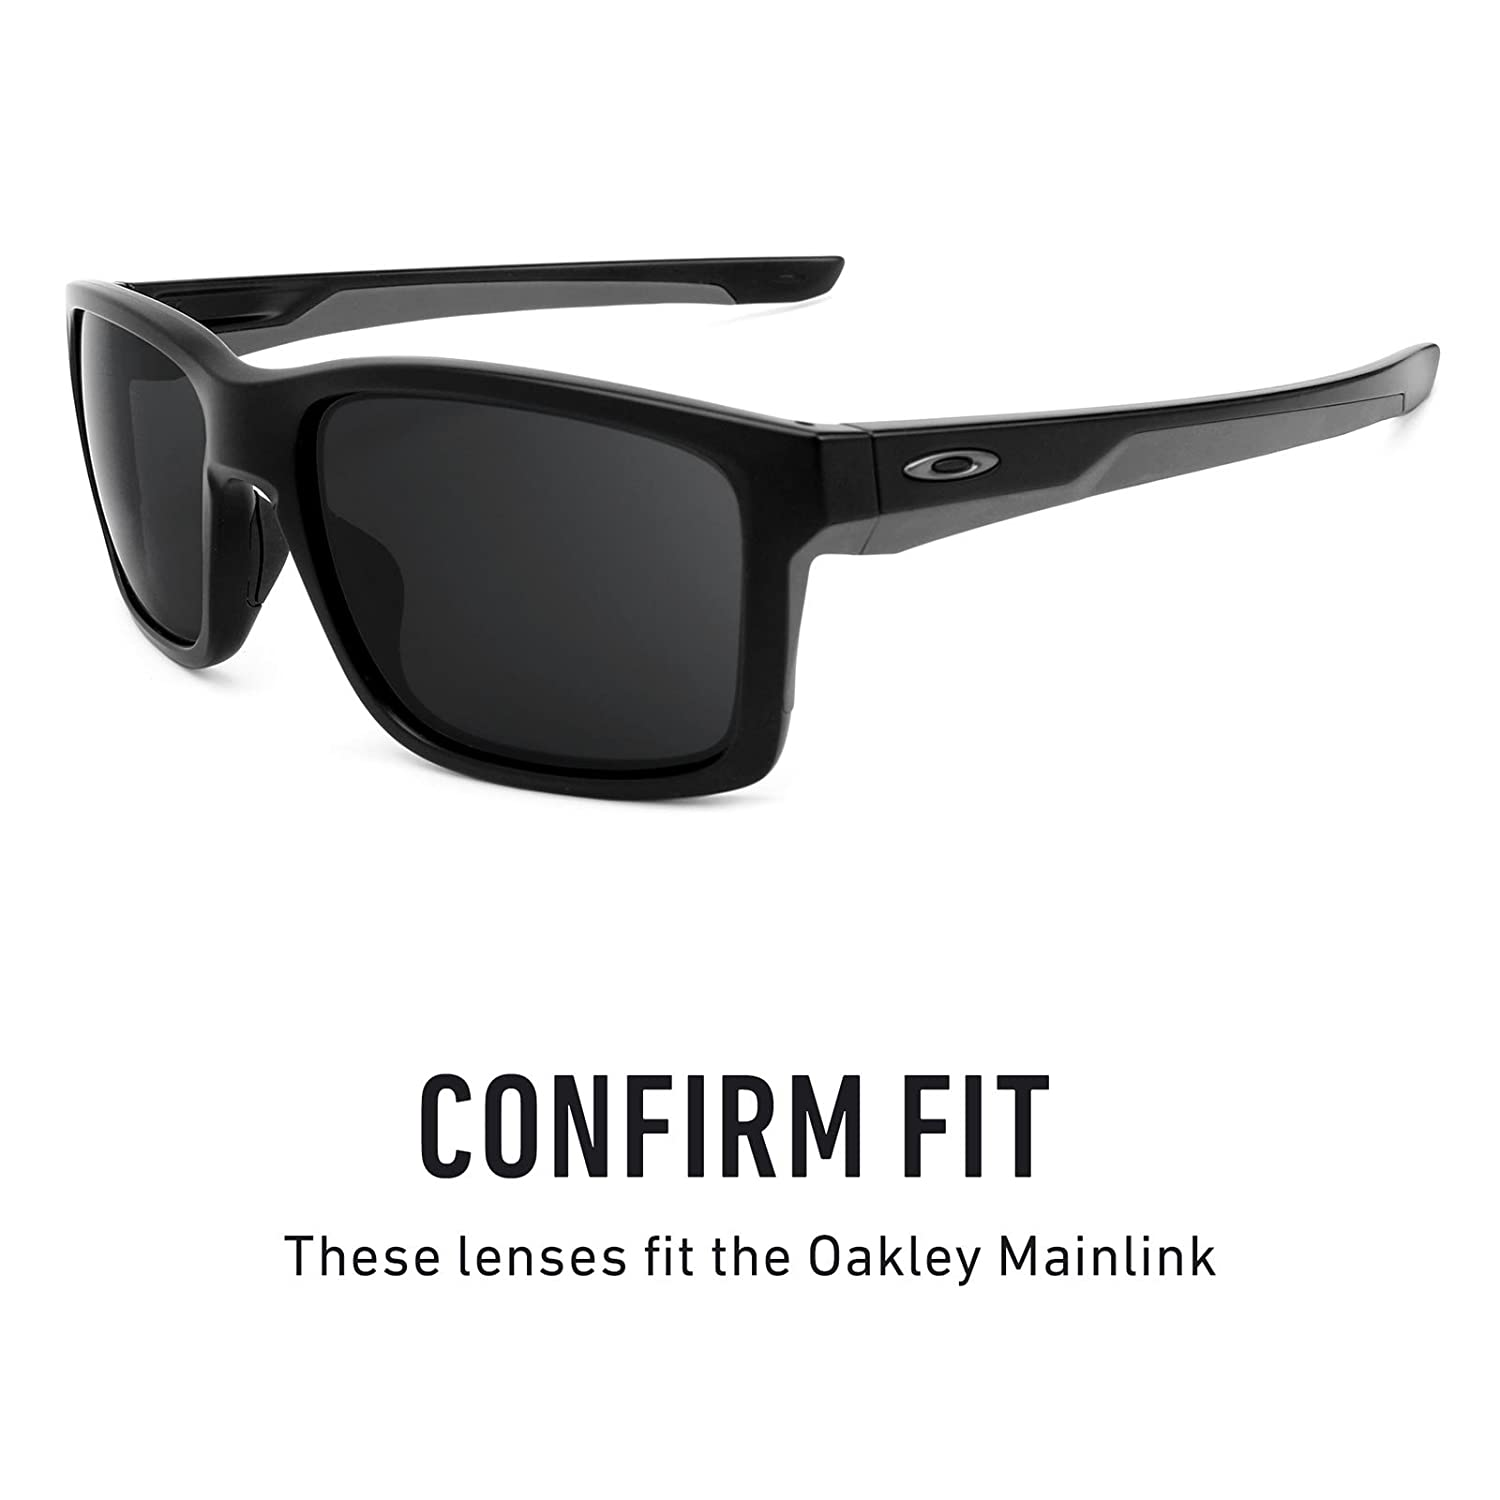 f0e090ac5cf Revant Replacement Lenses for Oakley Mainlink Elite Adapt Grey  Photochromic  Amazon.co.uk  Clothing